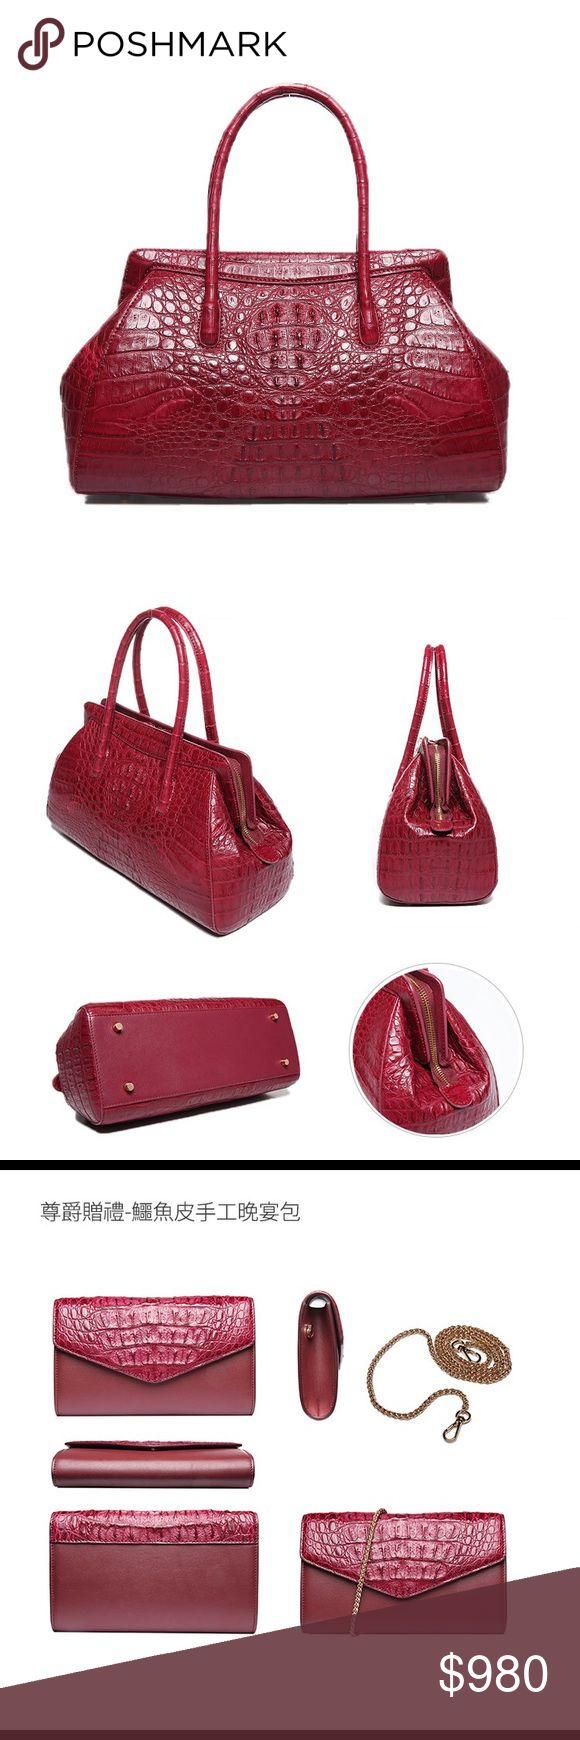 "D'MOM Deluxe Noble Series Nile Crocodile Handbag🎀 🌺 description is in the last picture.   🌹2017 officially signed with (LVMH) crocodile leather supplier Singapore HENG LONG signed a contract.   🌹D'MOM selection of ""super"" grade crocodile leather.  🌹customize service/ Crocodile leather v.s handmade  🌺 website: dmomspain.com D'MOM Bags"